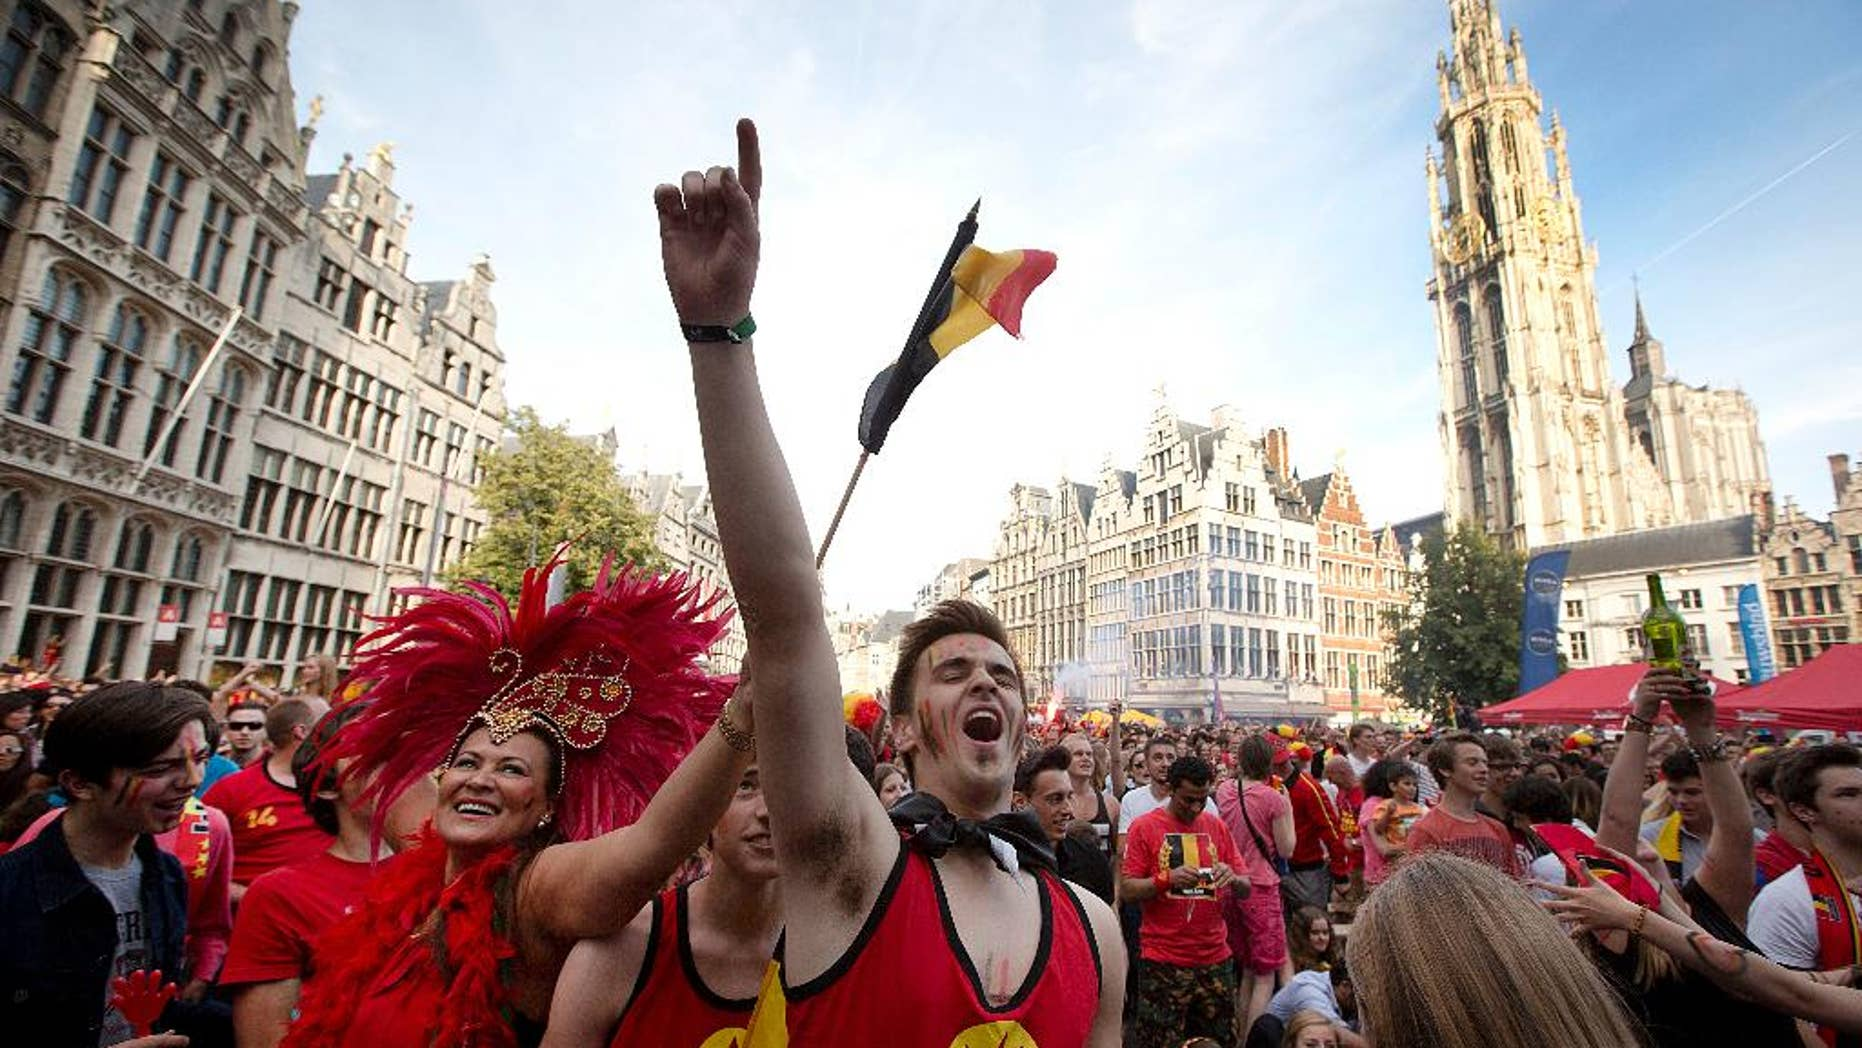 Belgian fans cheer after Belgium scored a goal as they watch the soccer match on a giant screen in the Grote Markt in Antwerp, Belgium on Sunday, June 22, 2014. Belgium scored a 1-0 victory over Russia during the group H World Cup soccer match between Belgium and Russia at the Maracana Stadium in Rio de Janeiro, Brazil. (AP Photo/Virginia Mayo)